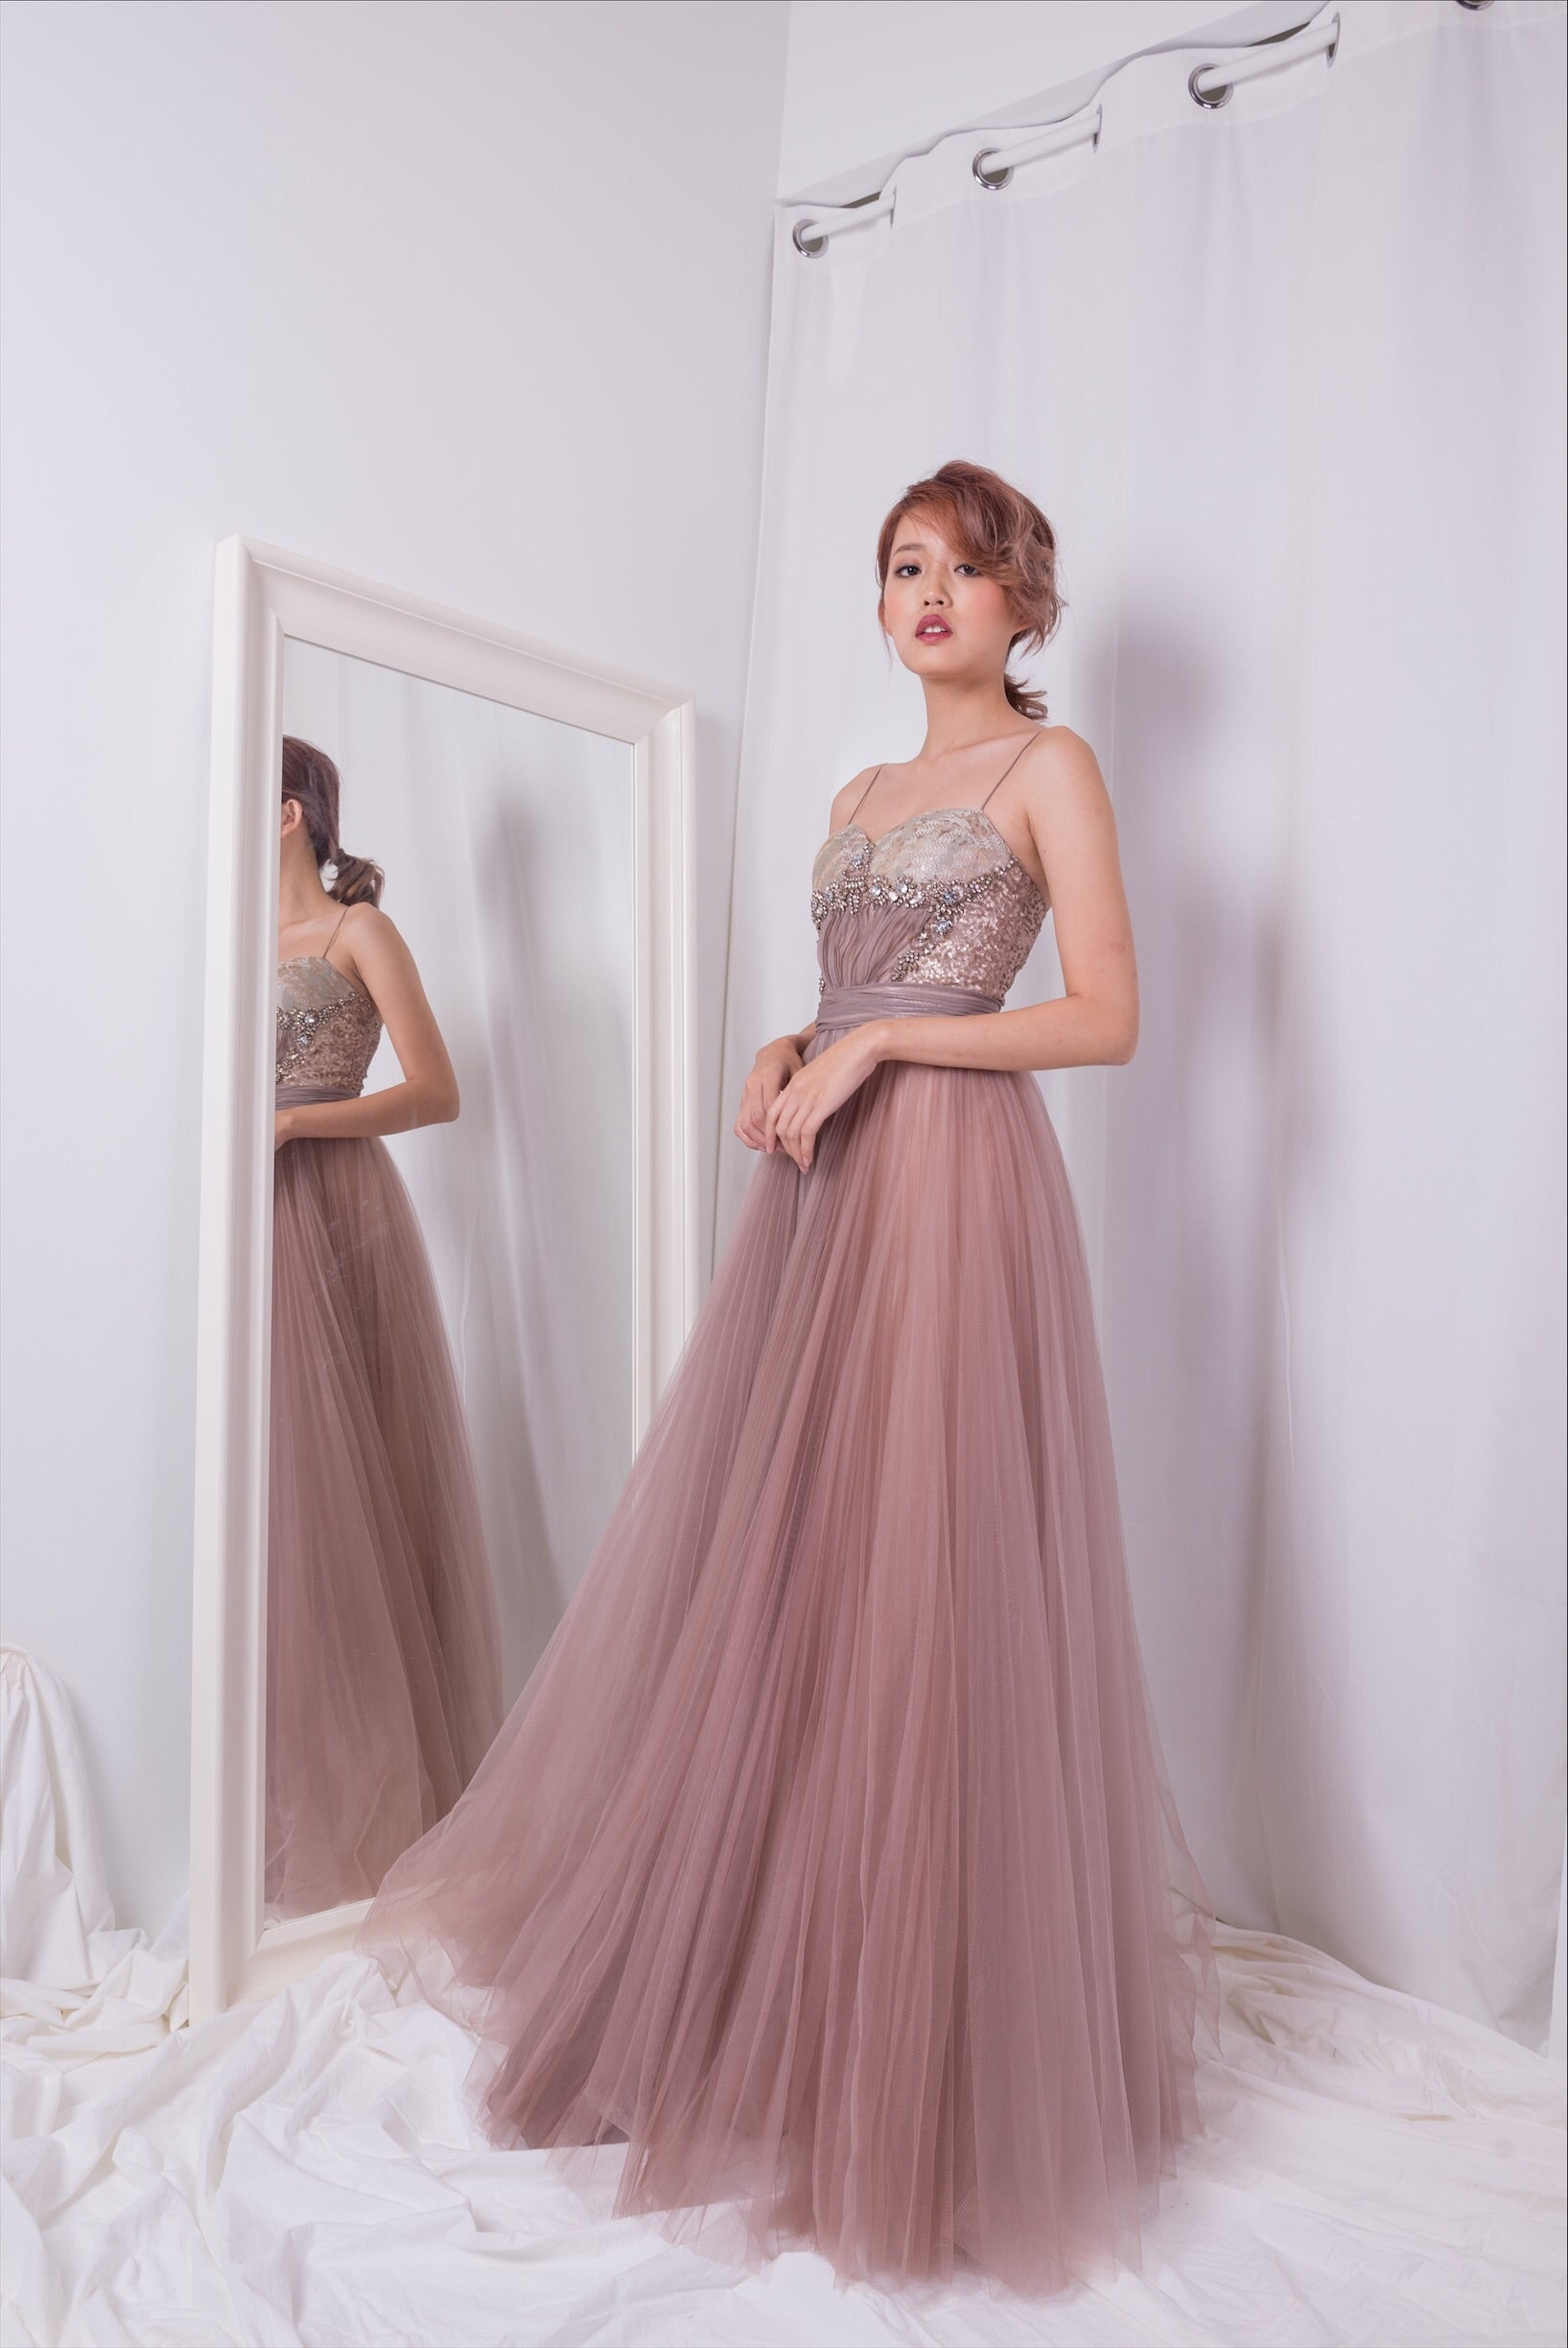 Angelic Pink Parisian Gown